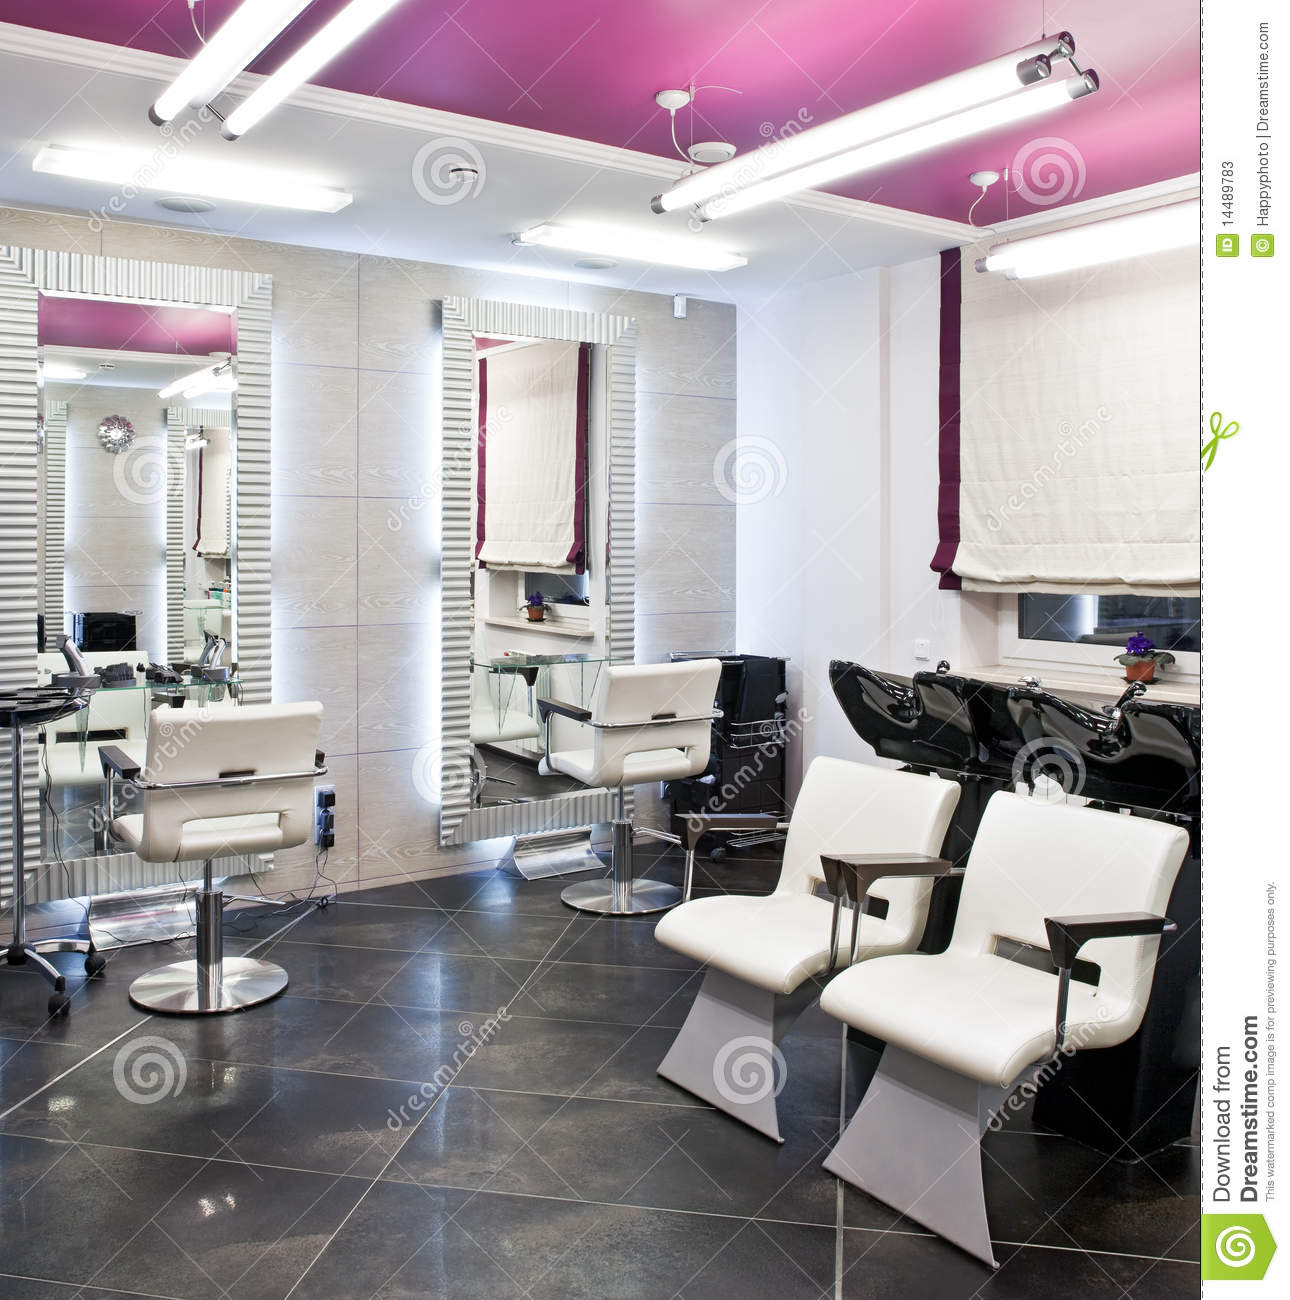 Beauty salon interior stock photos image 14489783 for A little luxury beauty salon